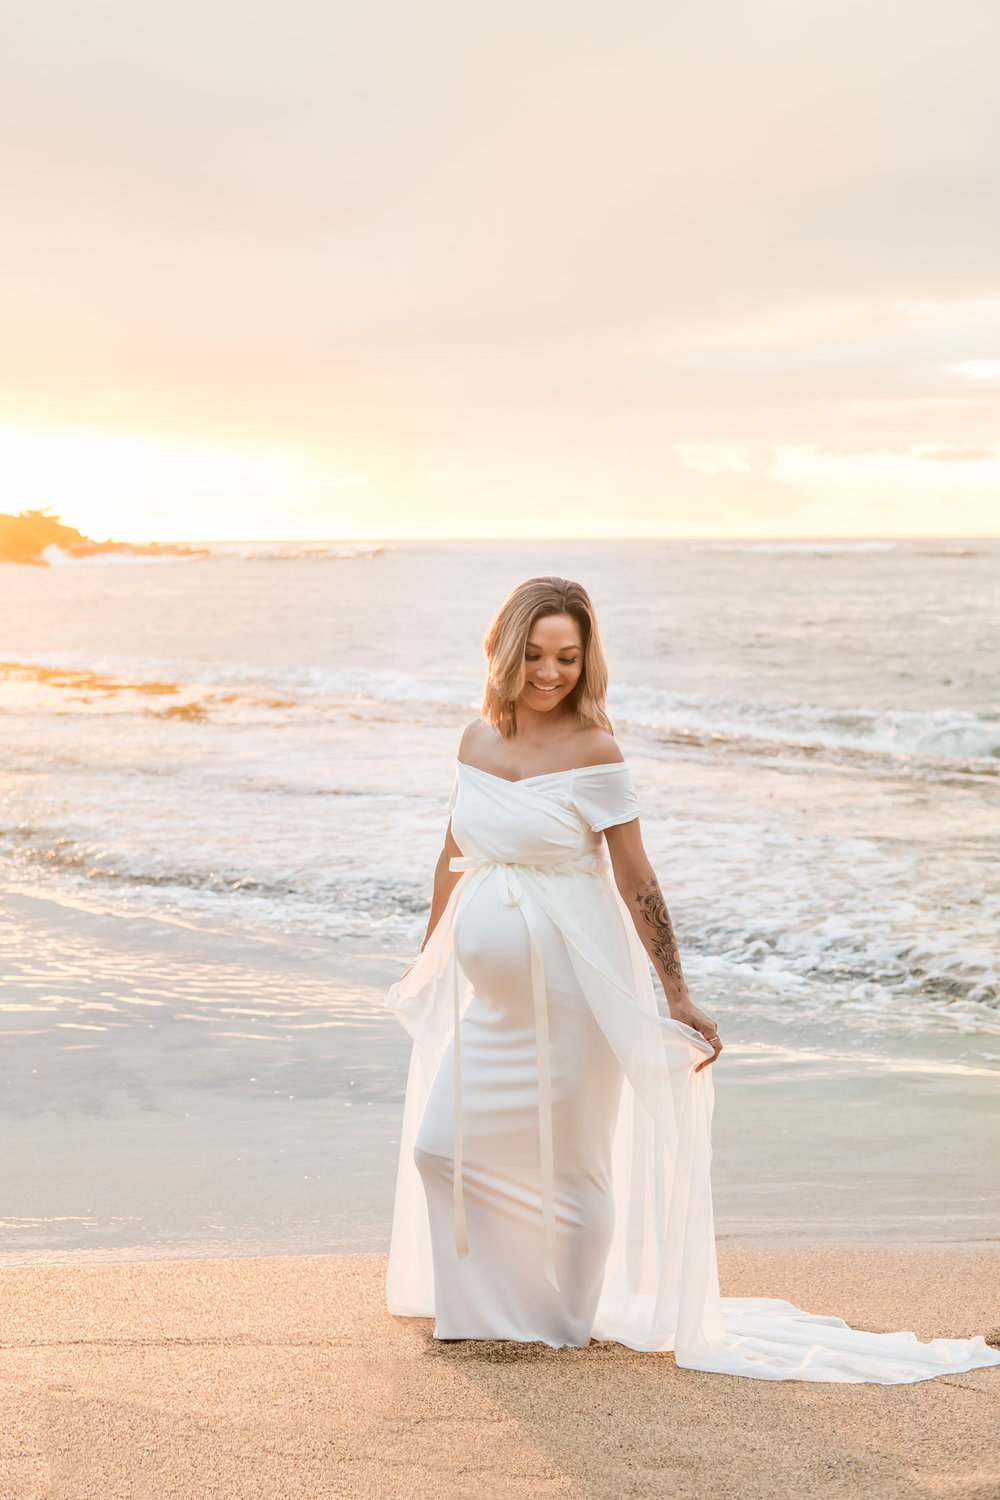 Kauai Maternity Photography at sunrise.  Beautiful mama wearing dress by Sexy Mama Maternity.